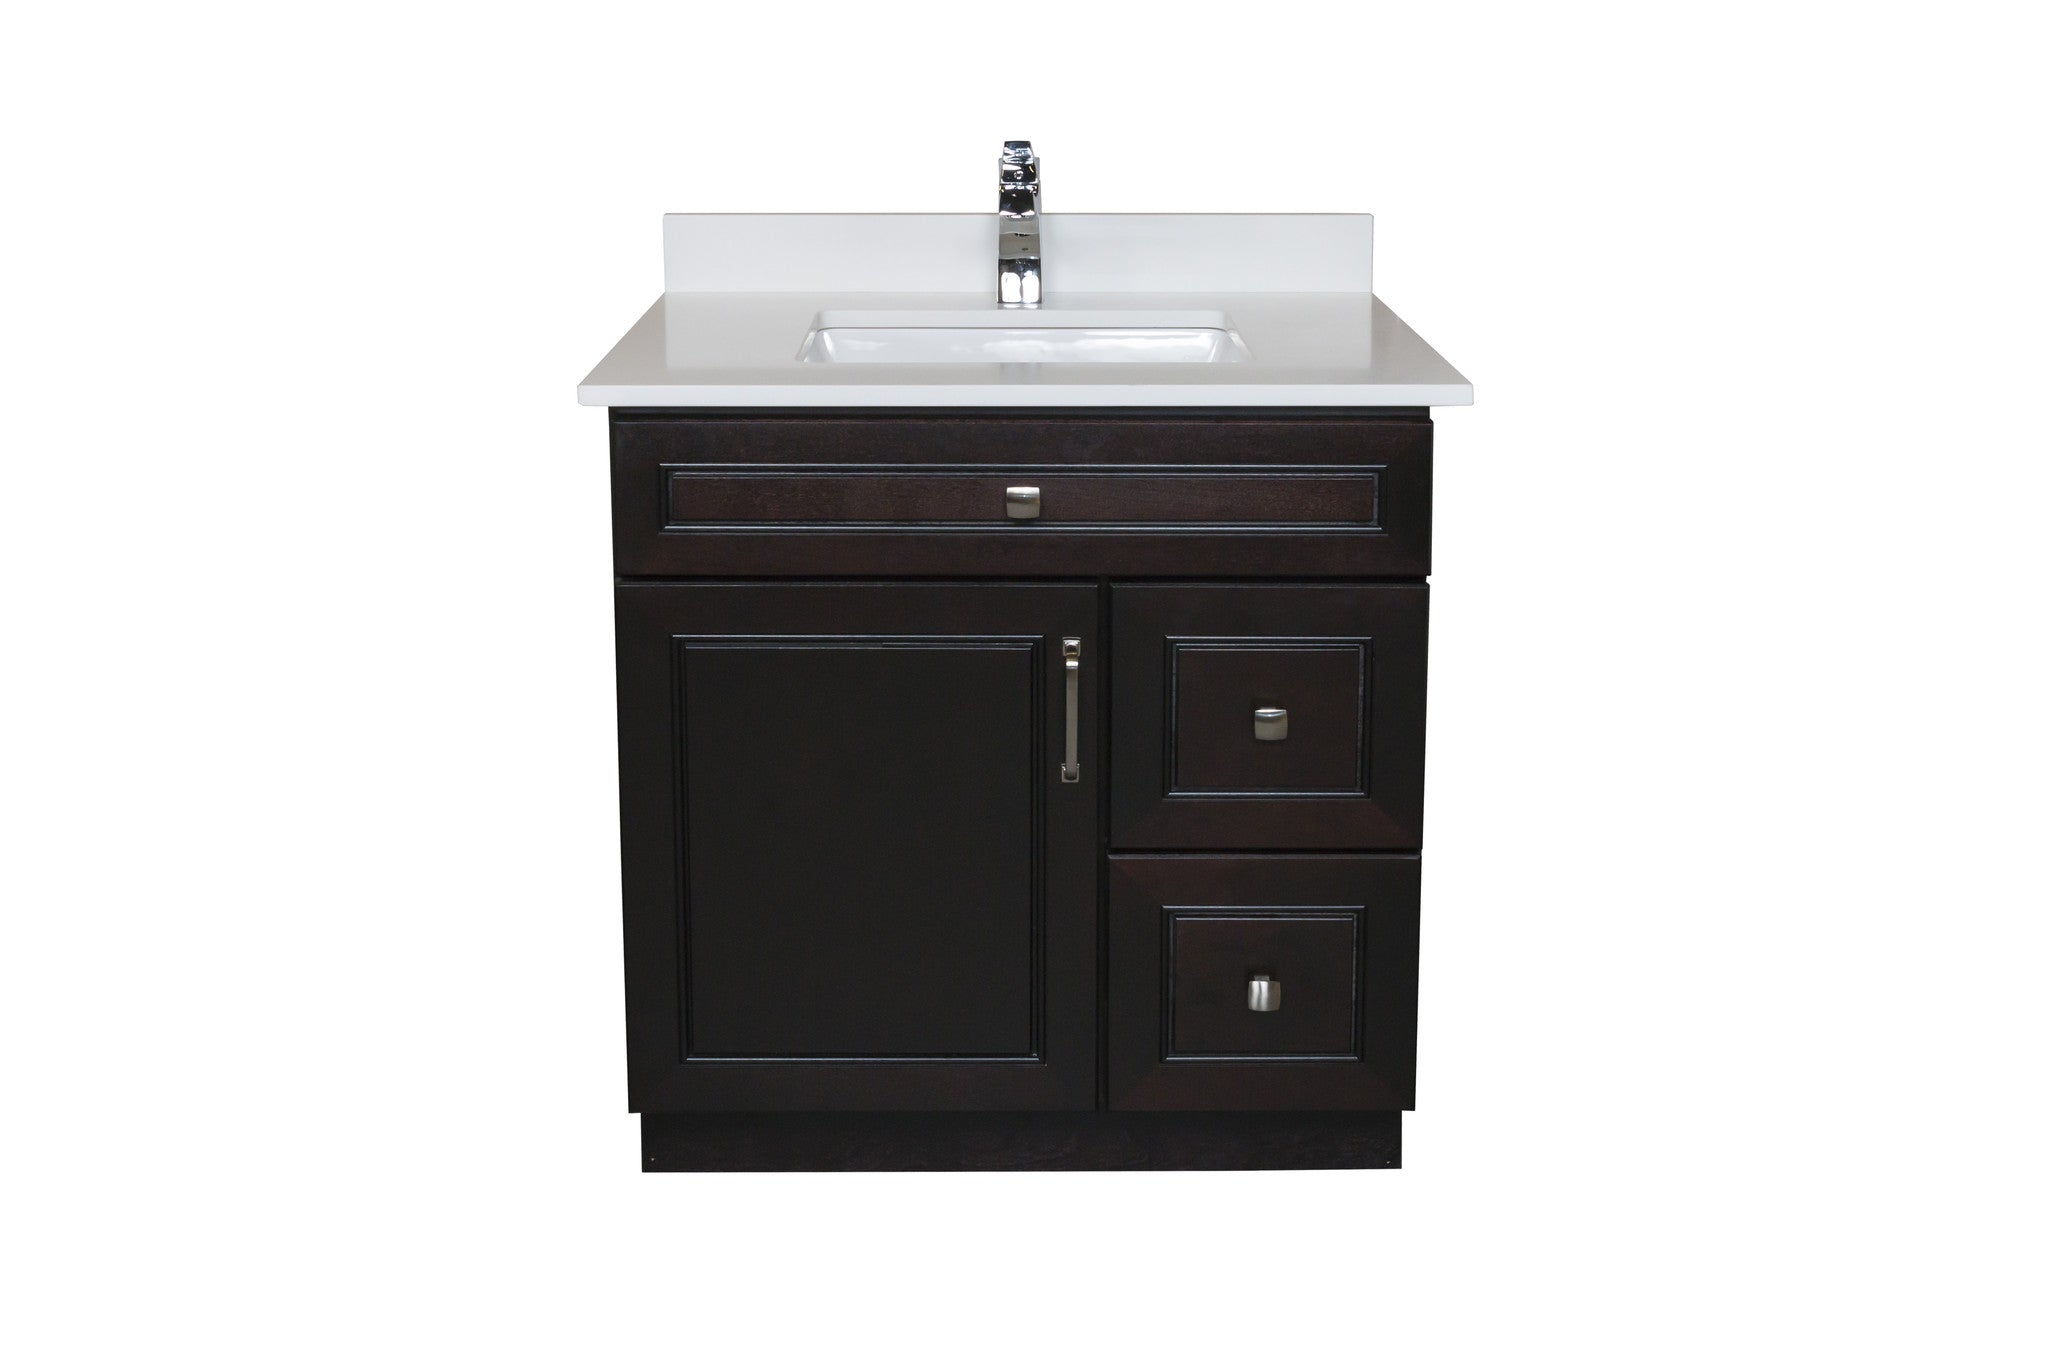 mount bathroom vanity gallery grey wall vintage inch consoles drawer of small cabinets and the cabinet images for with drawers double gray vanities sink modern option top